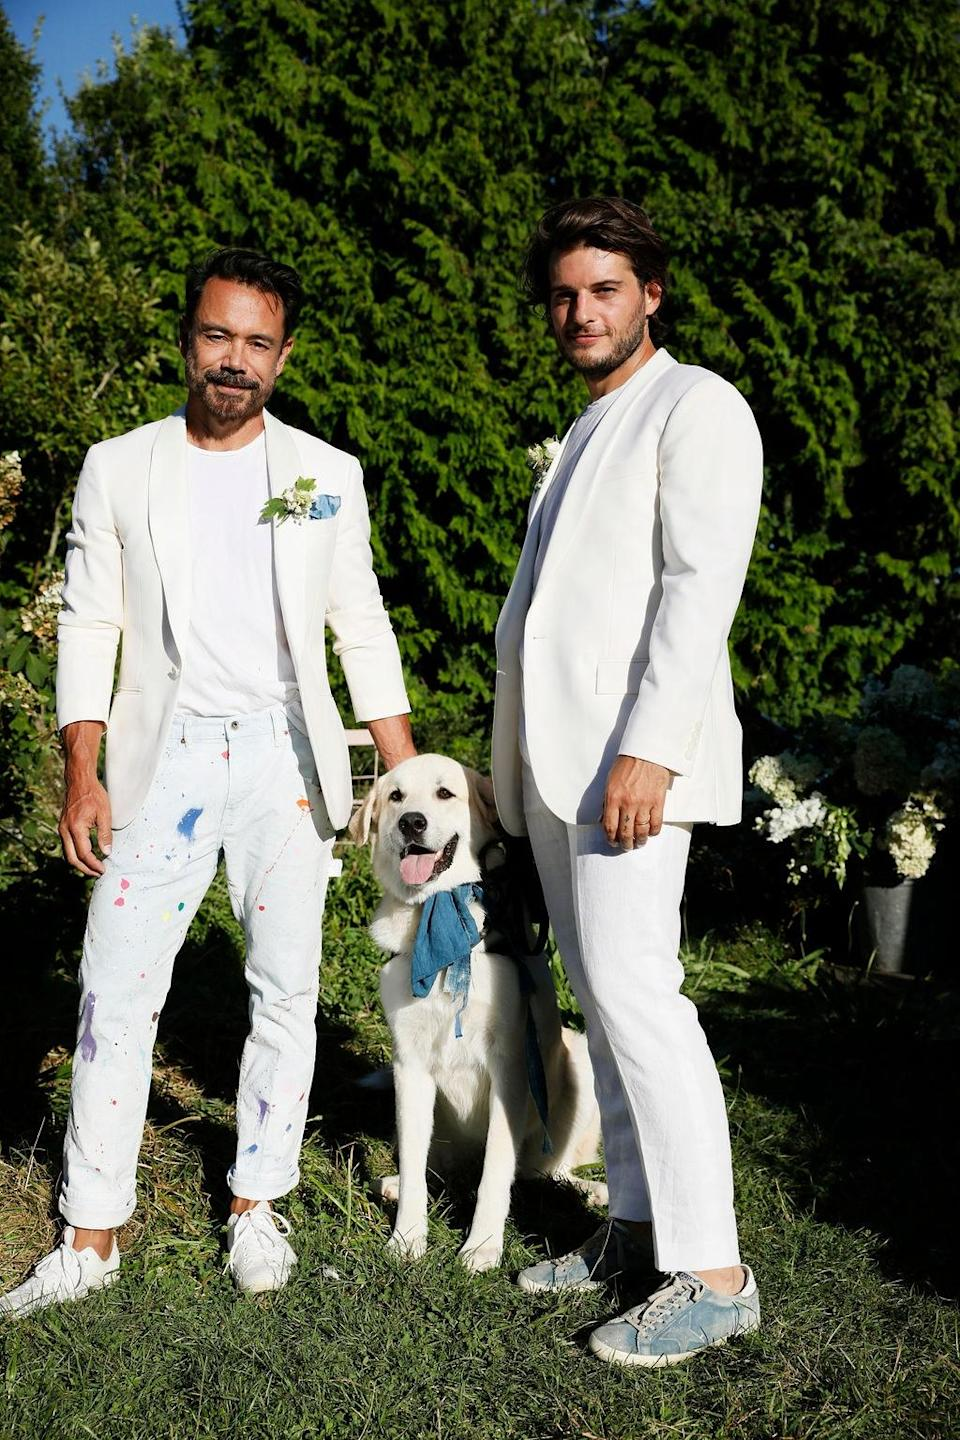 """""""Luca Belle, the 2-year-old Great Pyrenees and Spanish Mastiff mix that brought us together, wearing an indigo collar that carried our Van Cleef & Arpels thin gold wedding bands,"""" Dean says."""